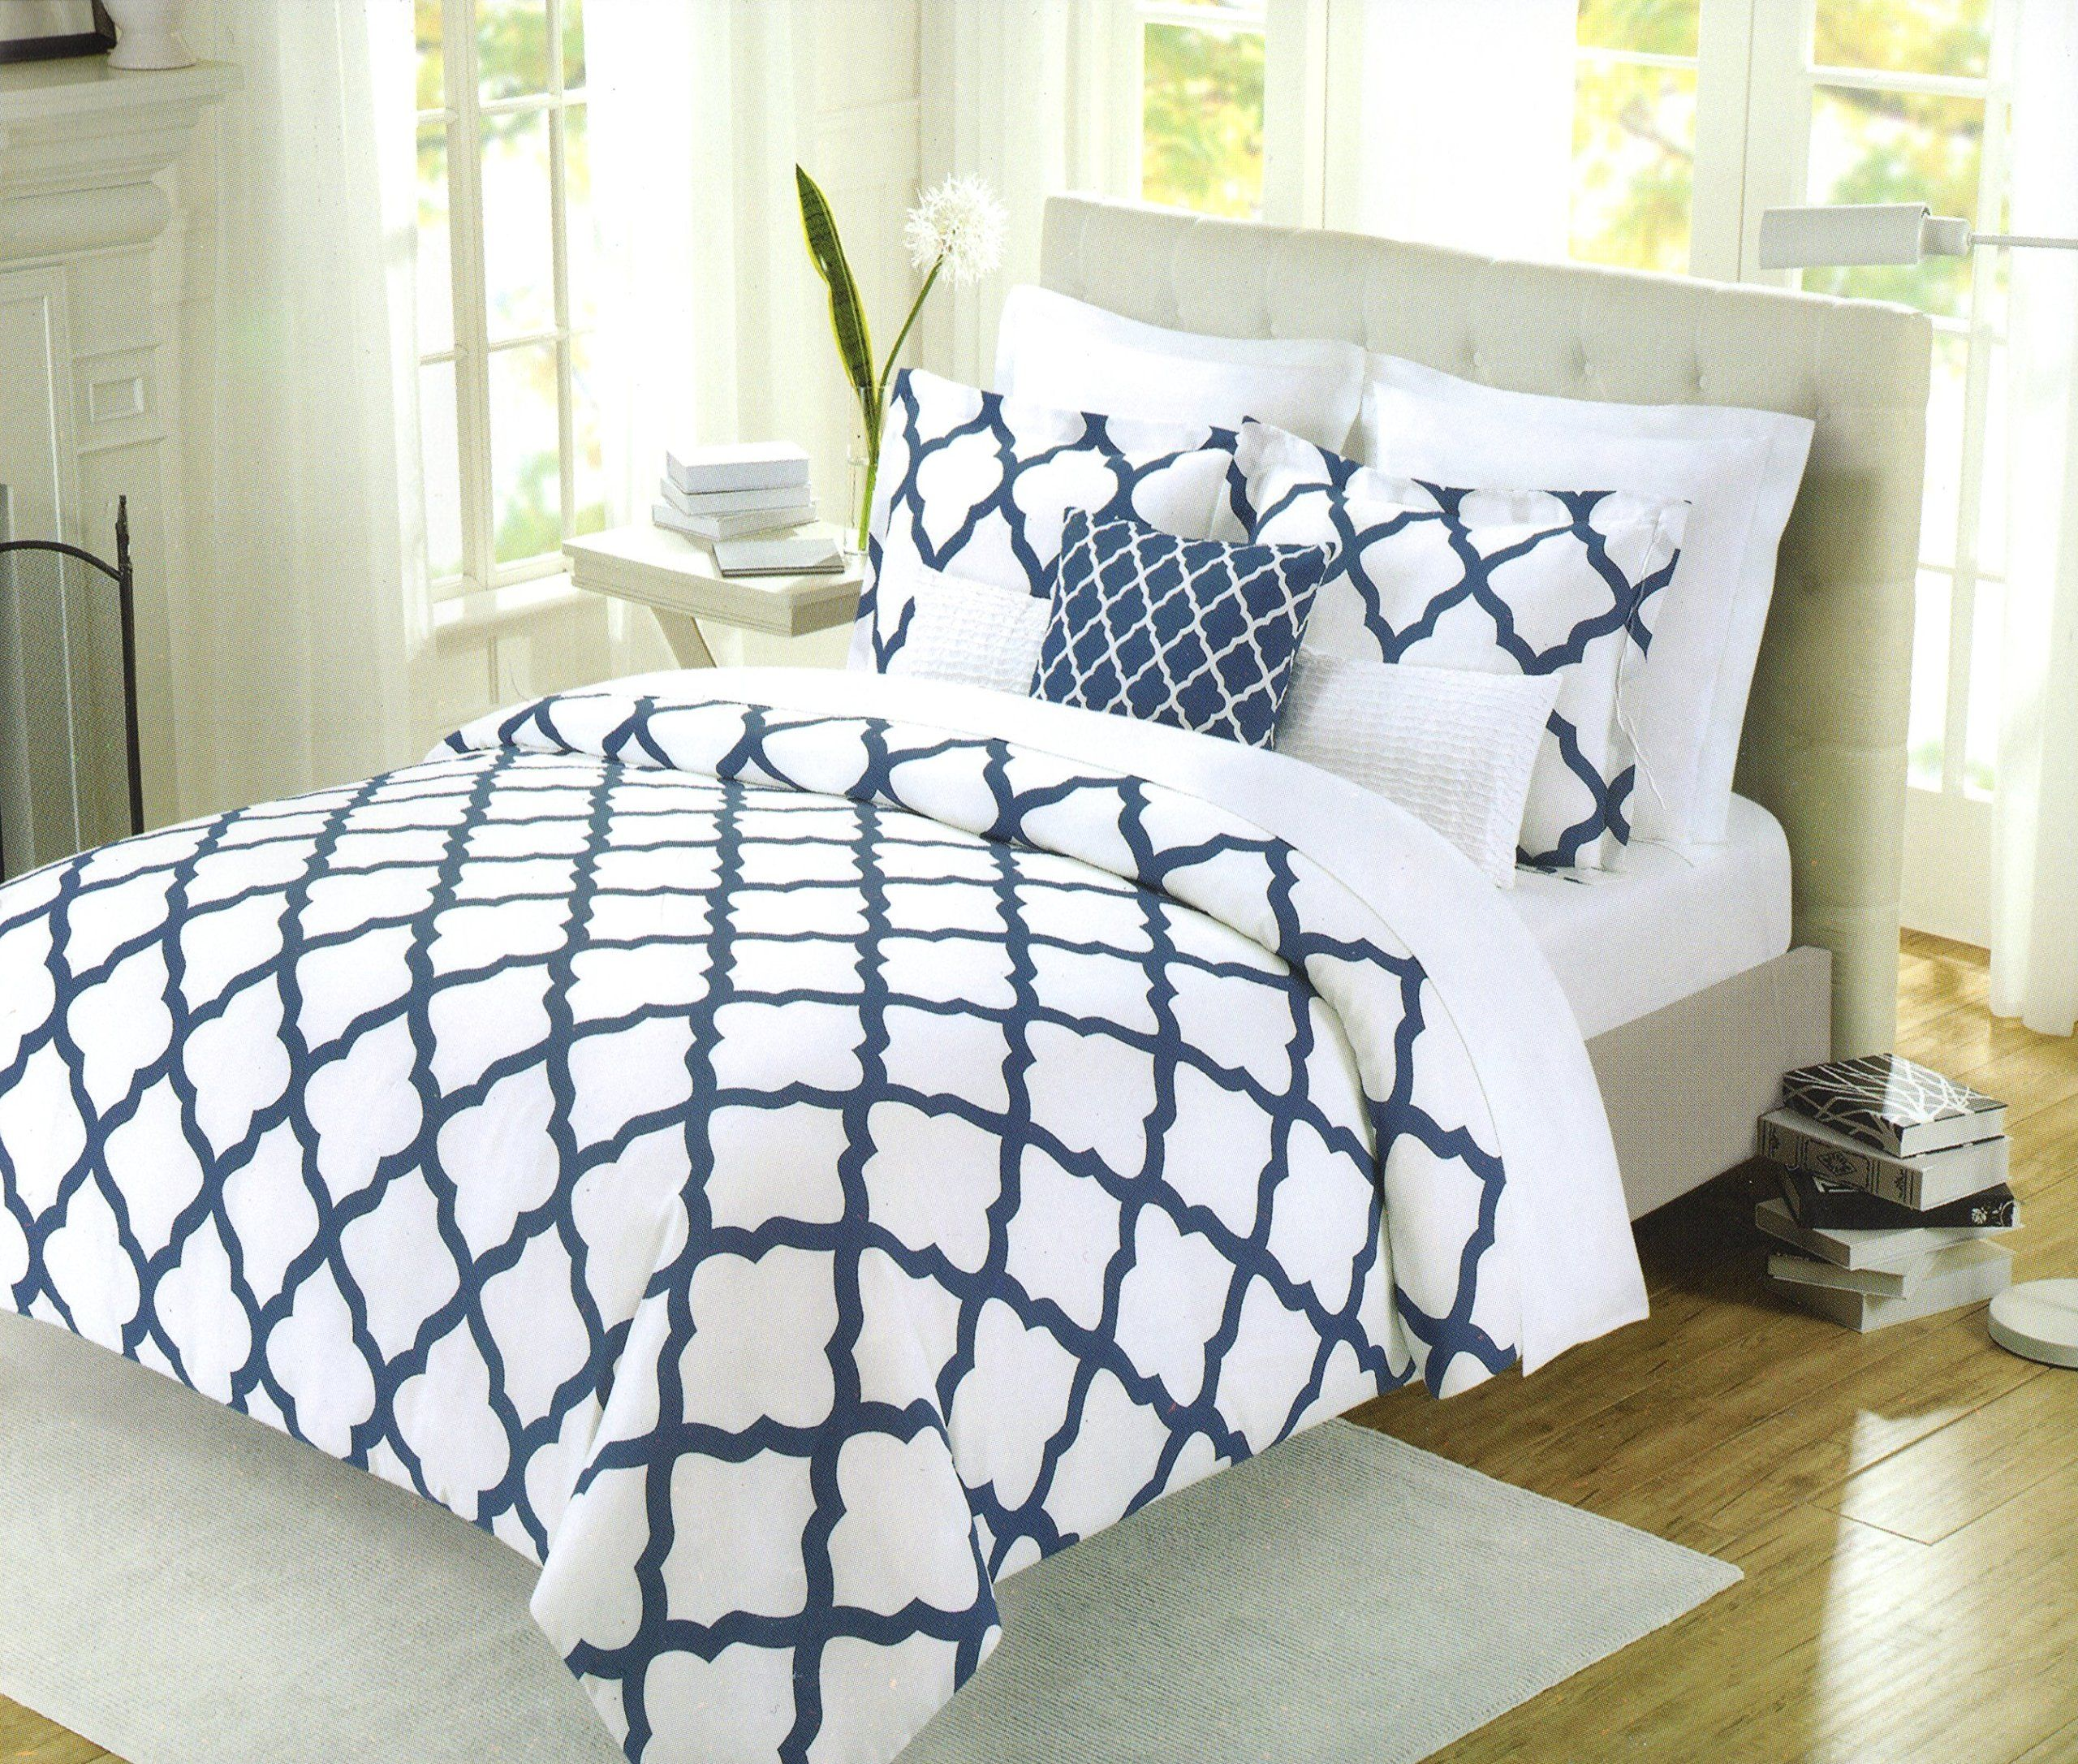 picture interesting indoor max miller debonair full together also wa nicole with decor bed bedroom cover sheets twin beddingnicole sheetsnicole paisley duvet design size studio then bedding large home